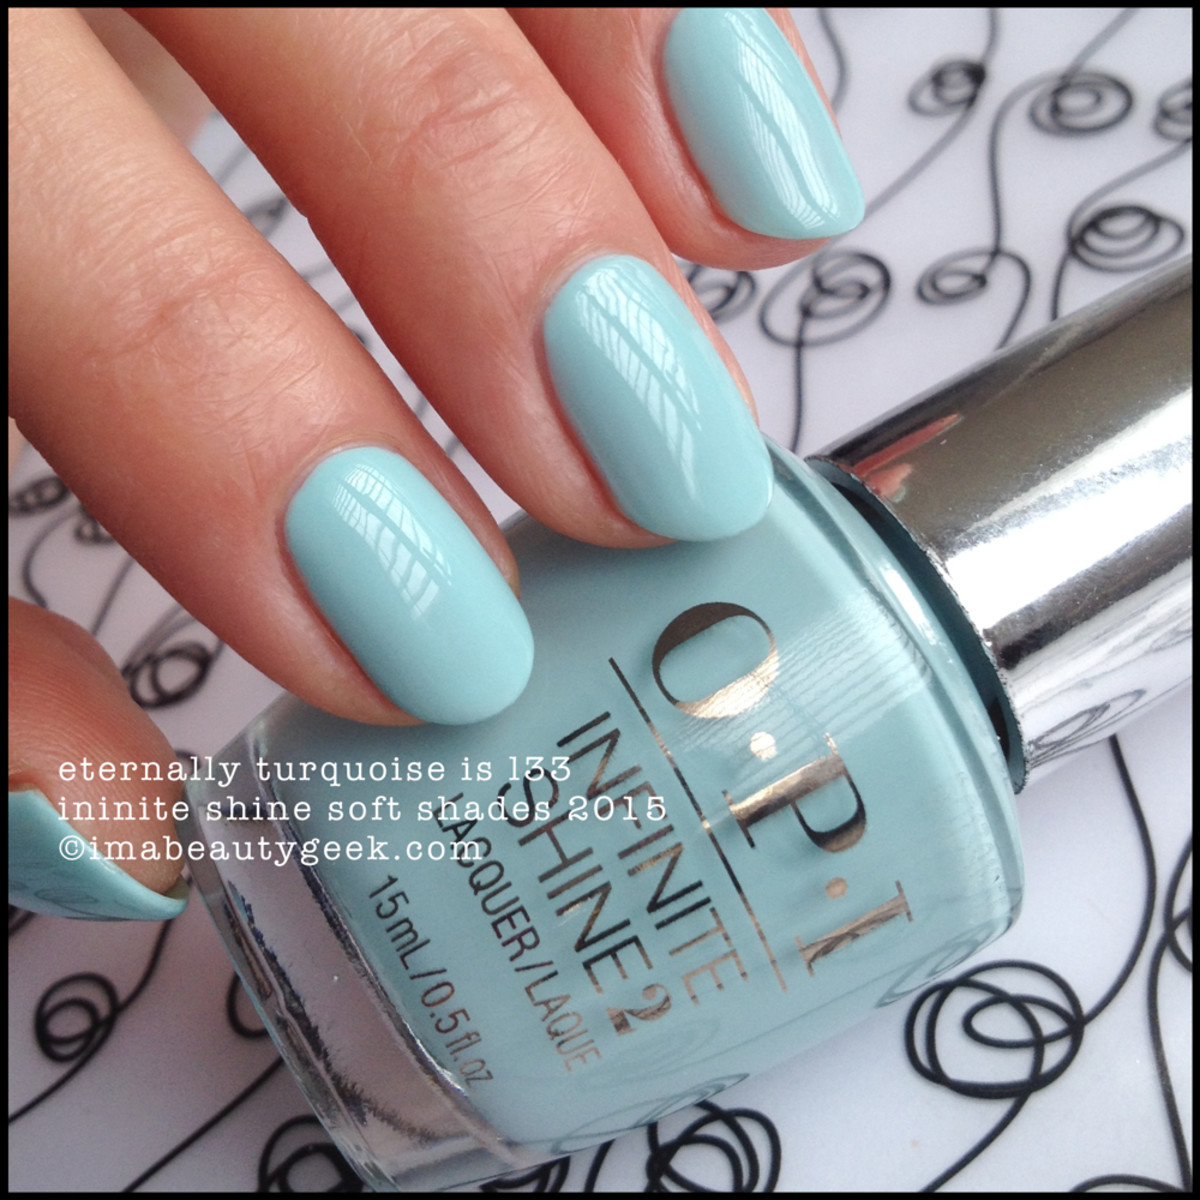 OPI Infinite Shine Eternally Turquoise OPI Soft Shades 2015